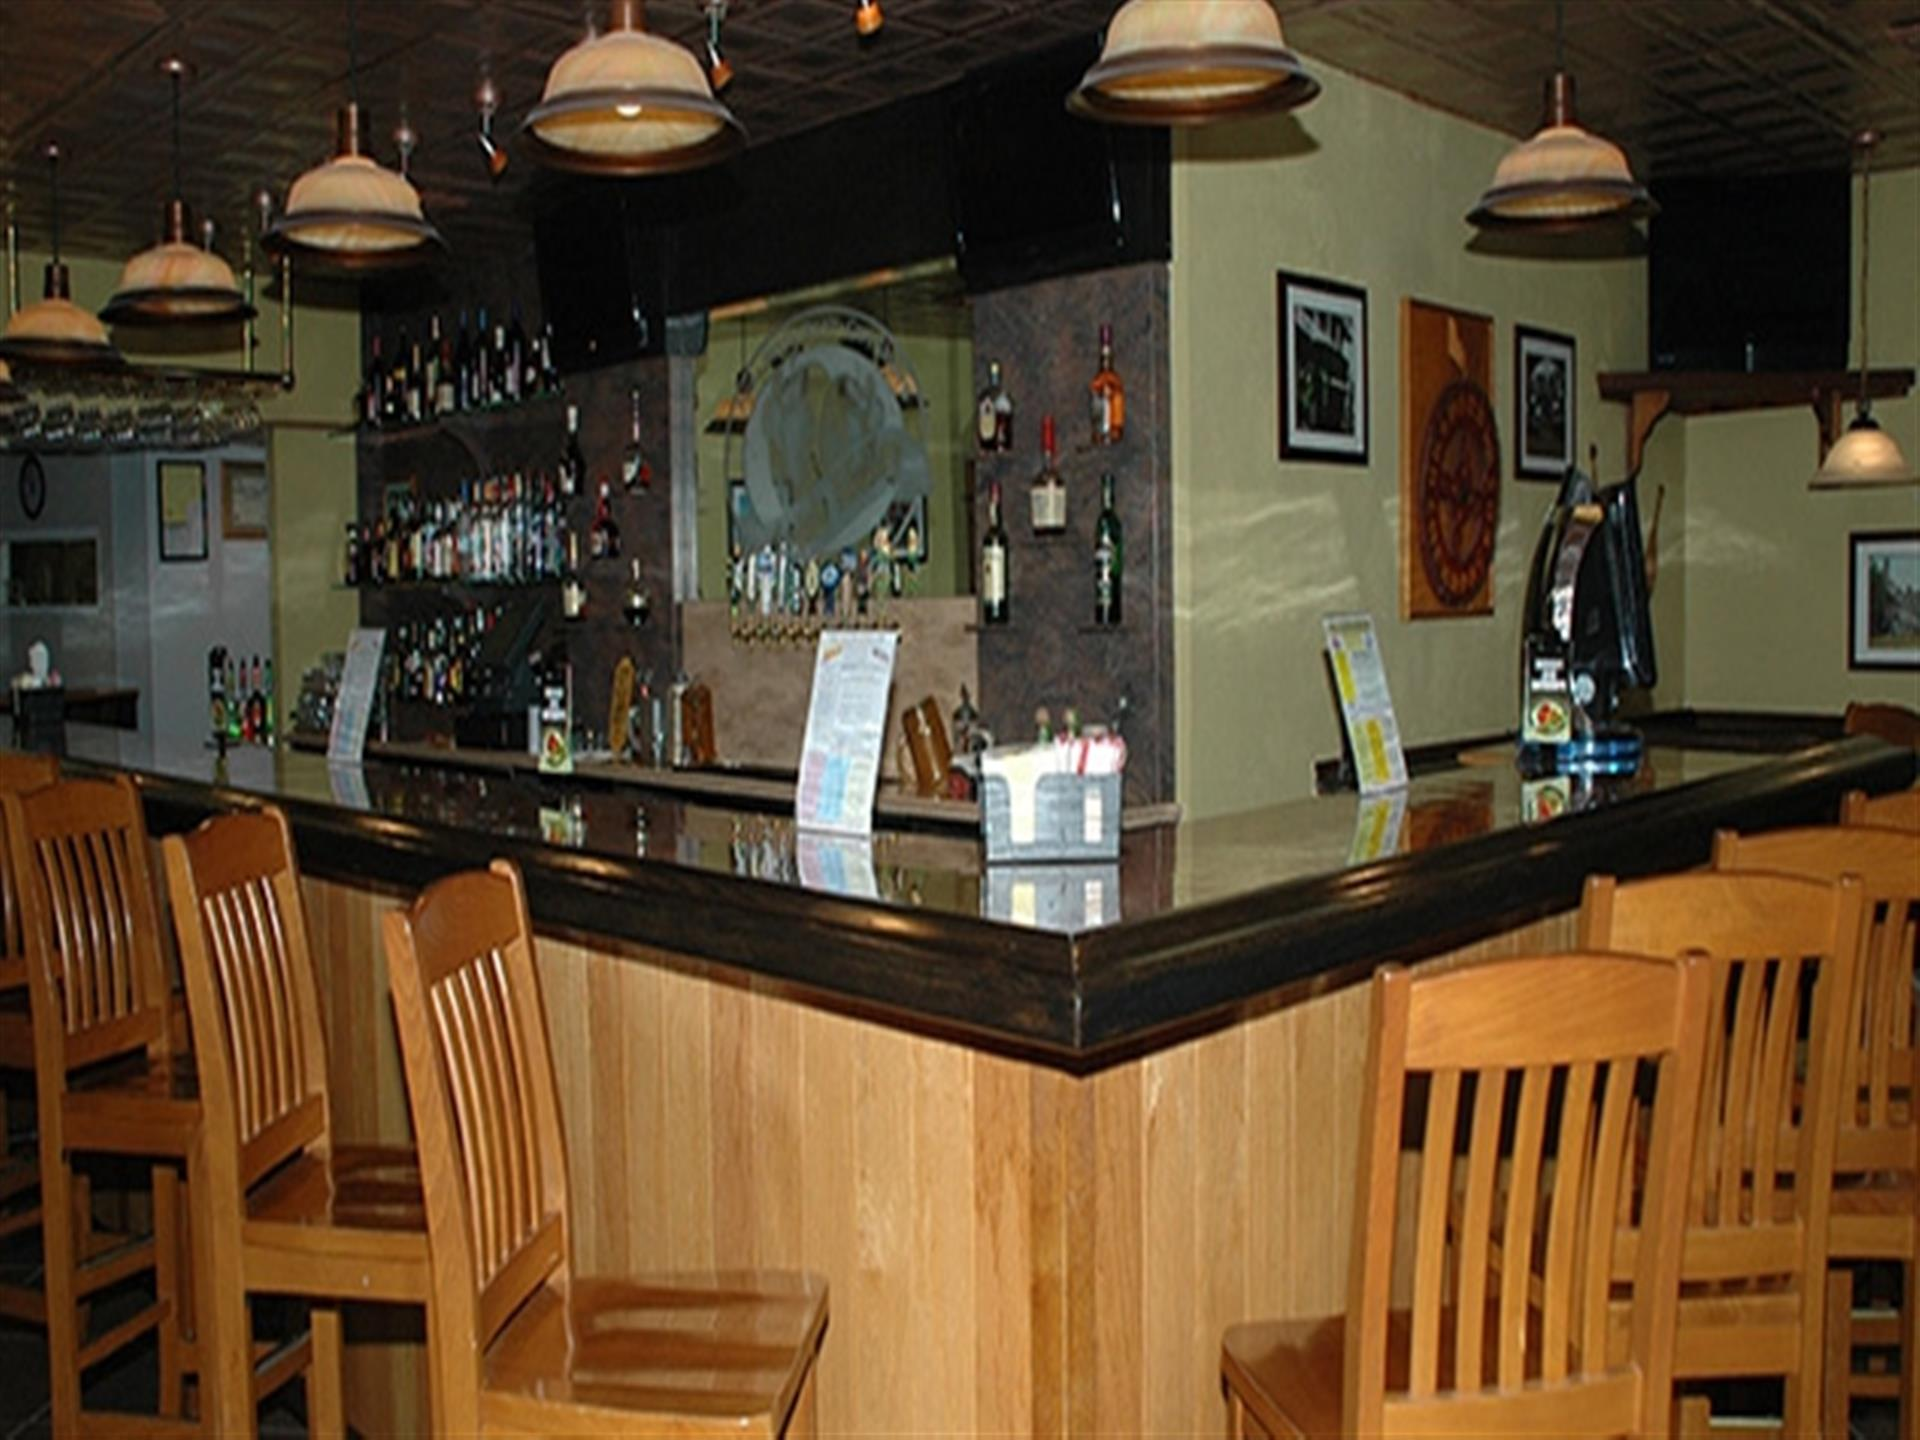 Bar area at Apple Valley Restaurant.